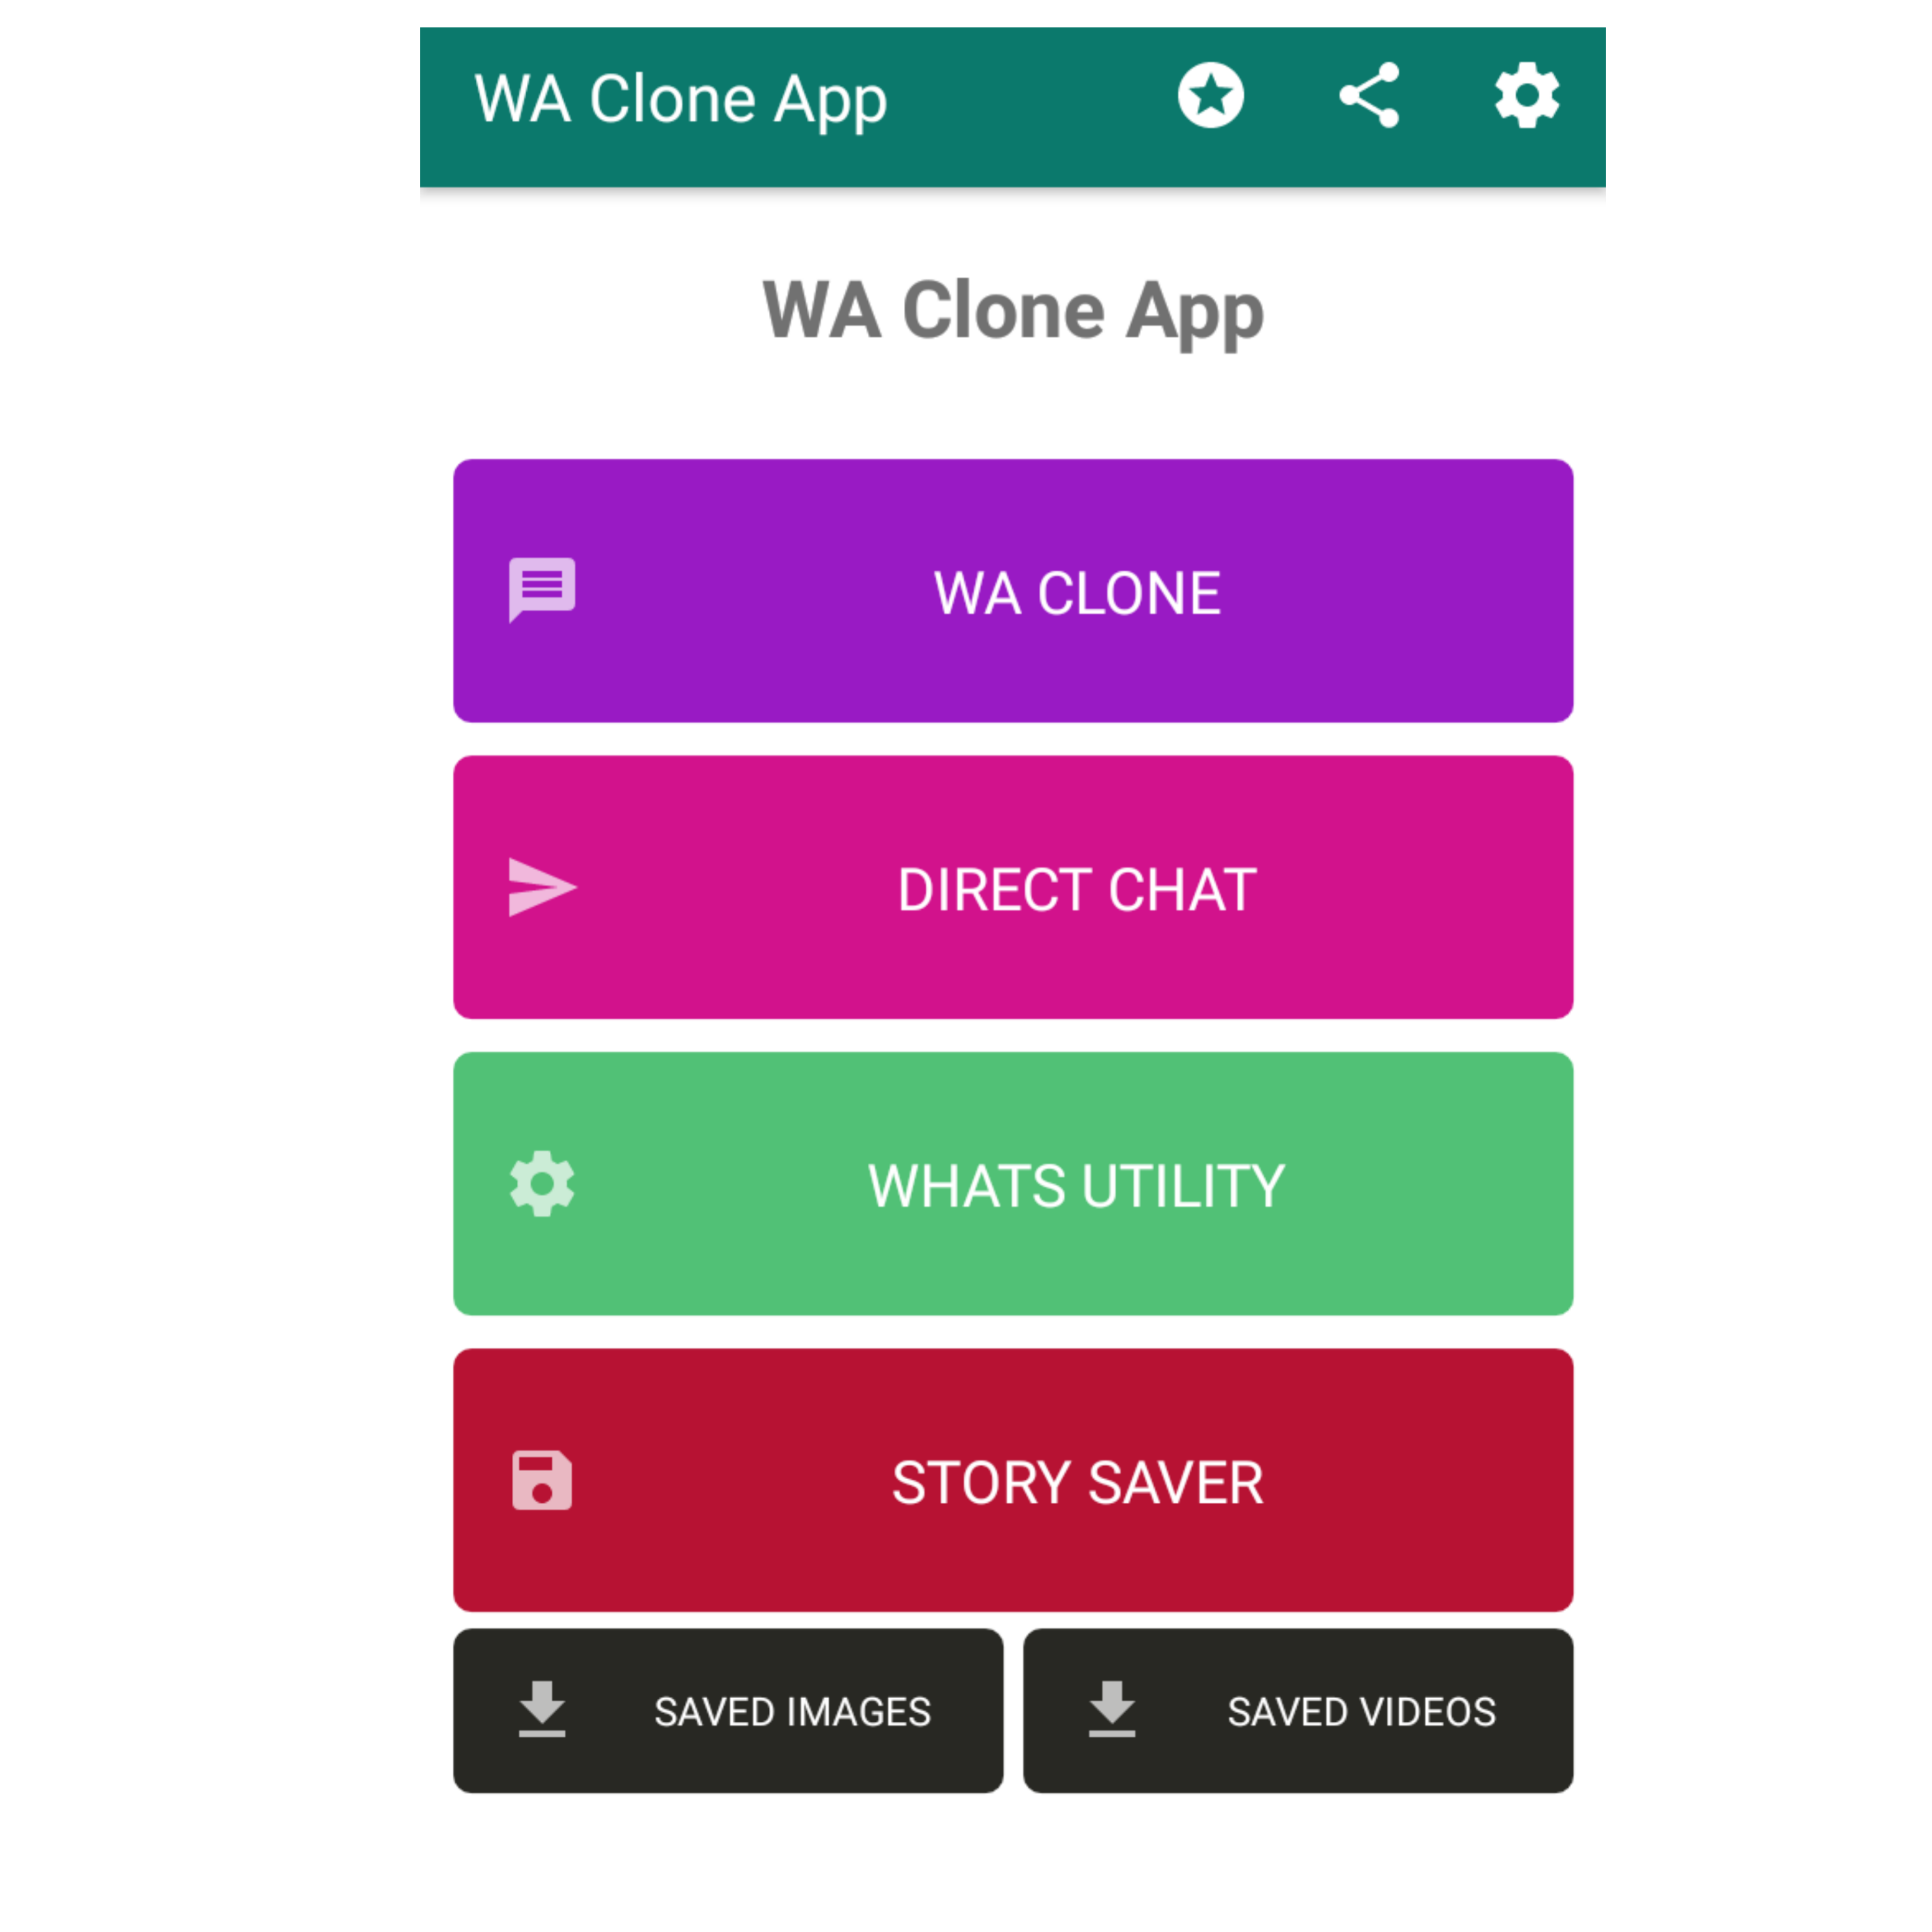 Whatsapp 4 Useful Features In 1 App